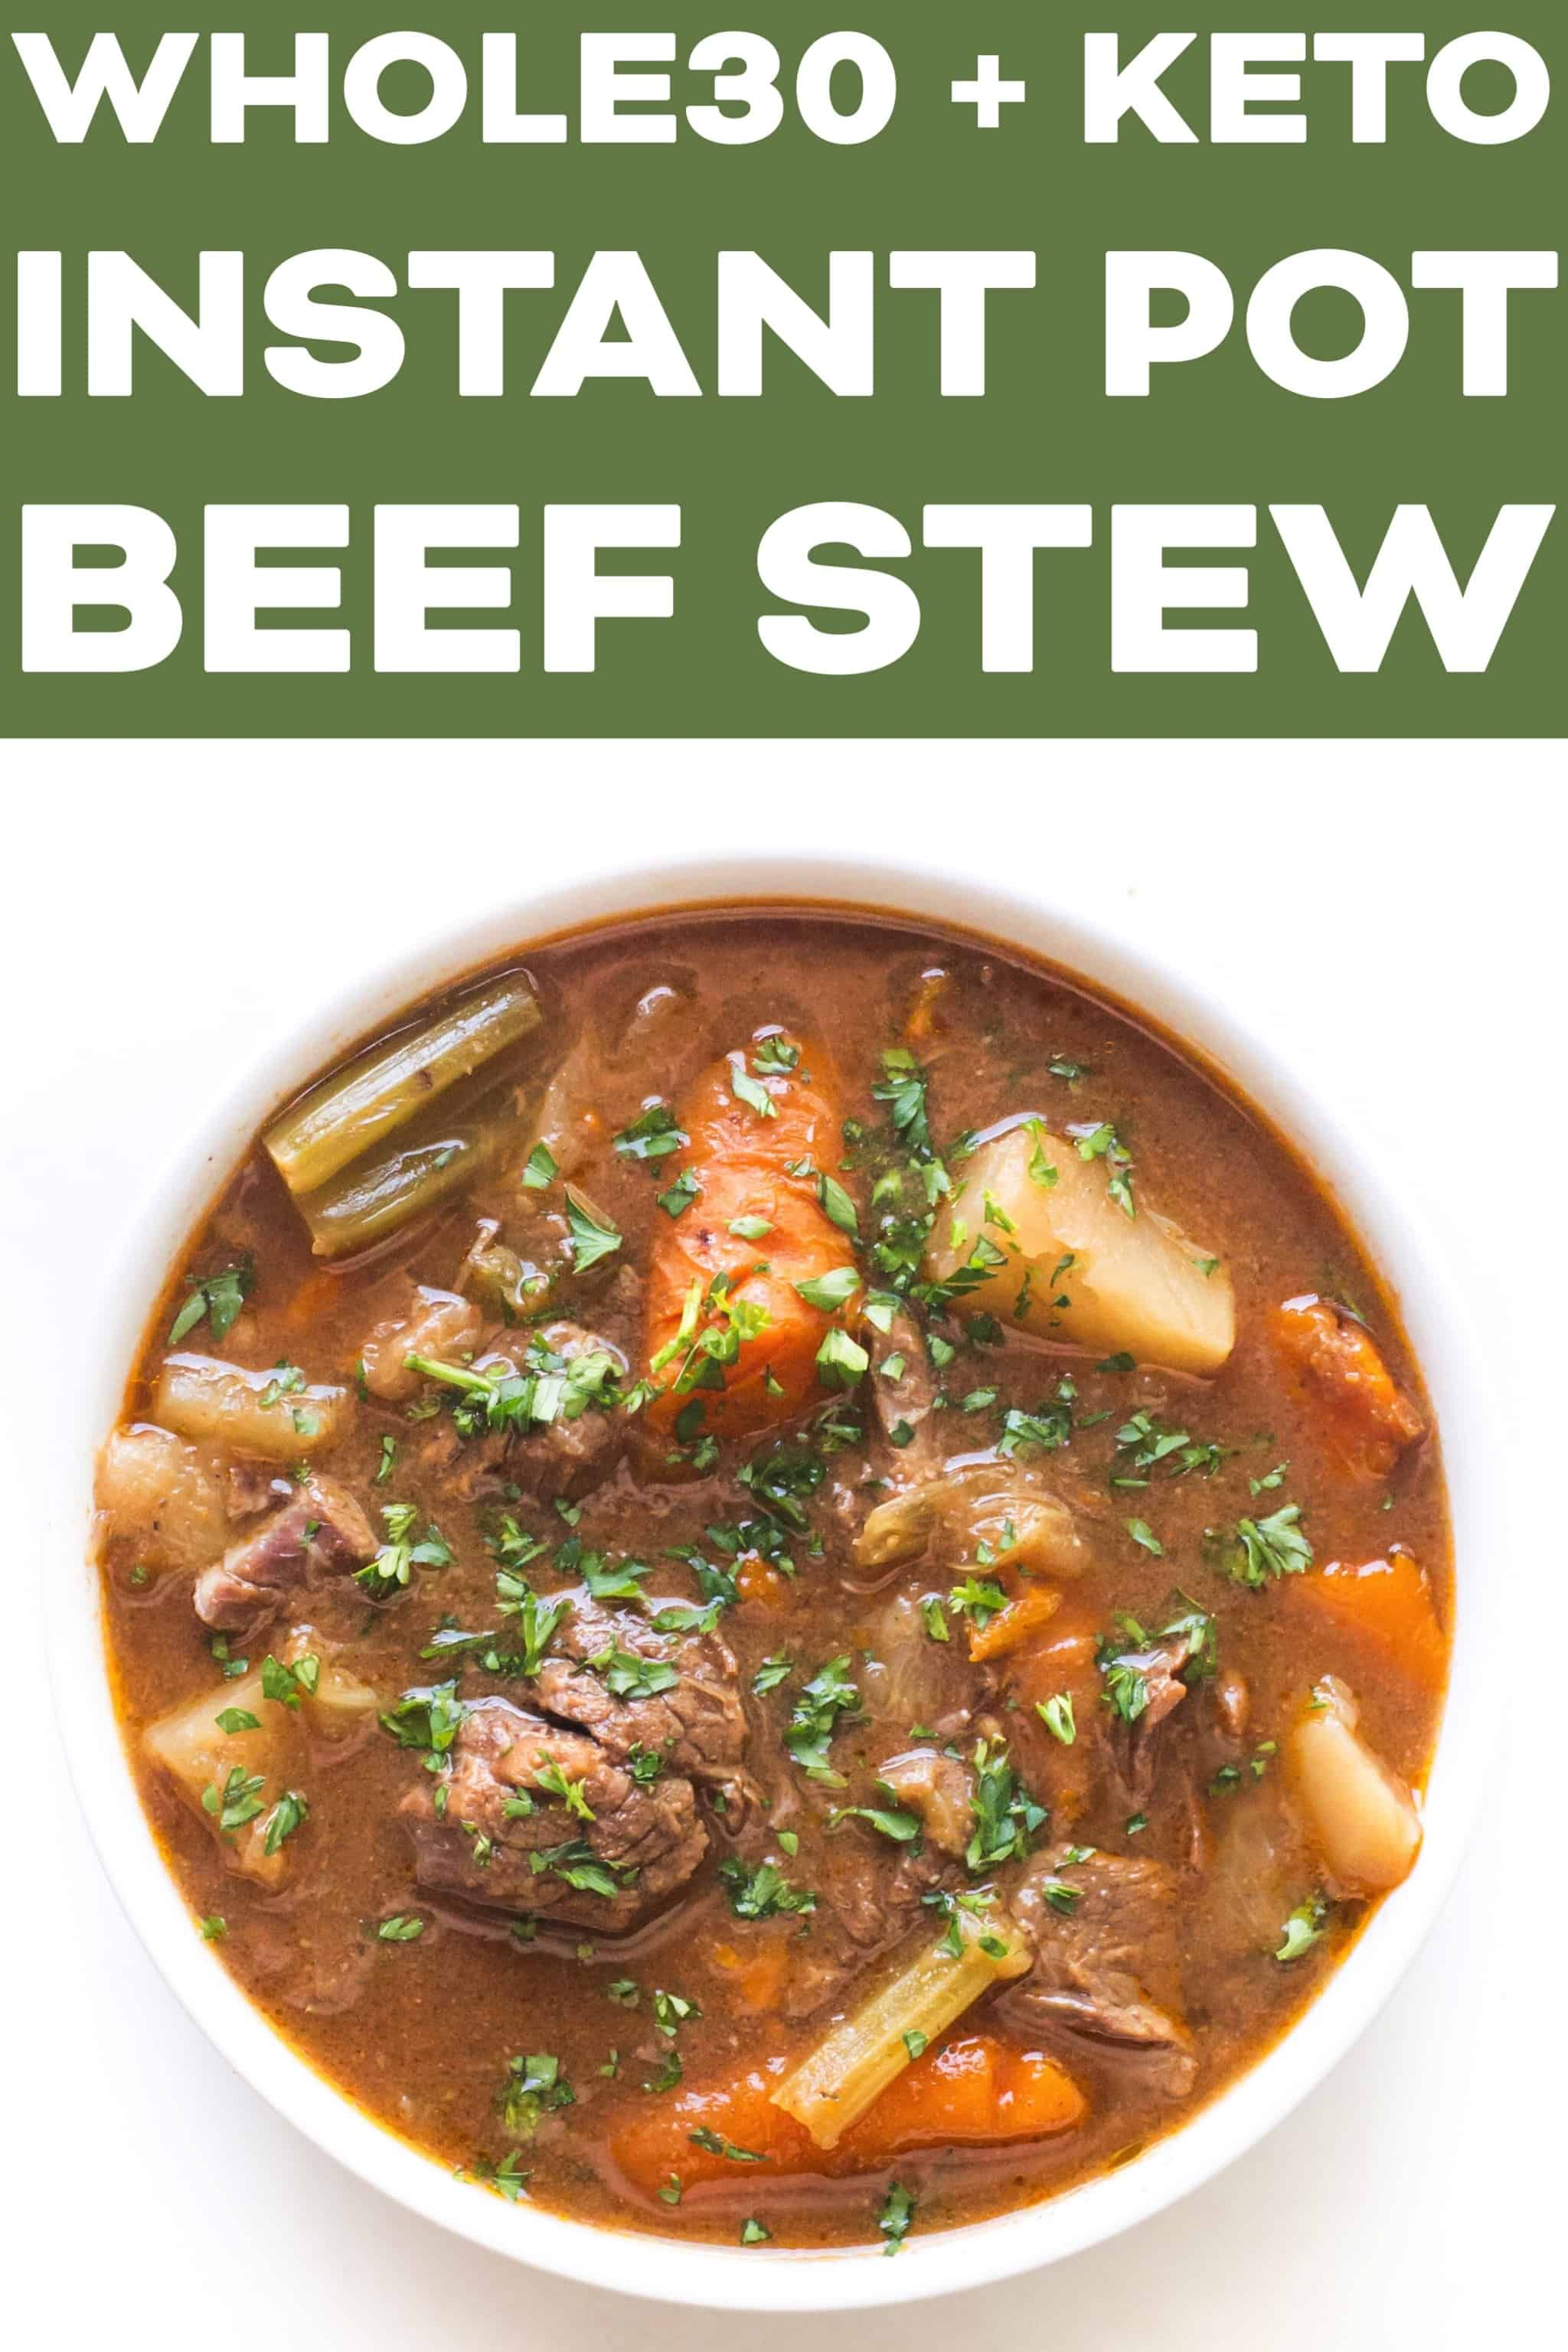 Whole30 Keto Instant Pot Beef Stew Recipe Video Hearty Low Carb